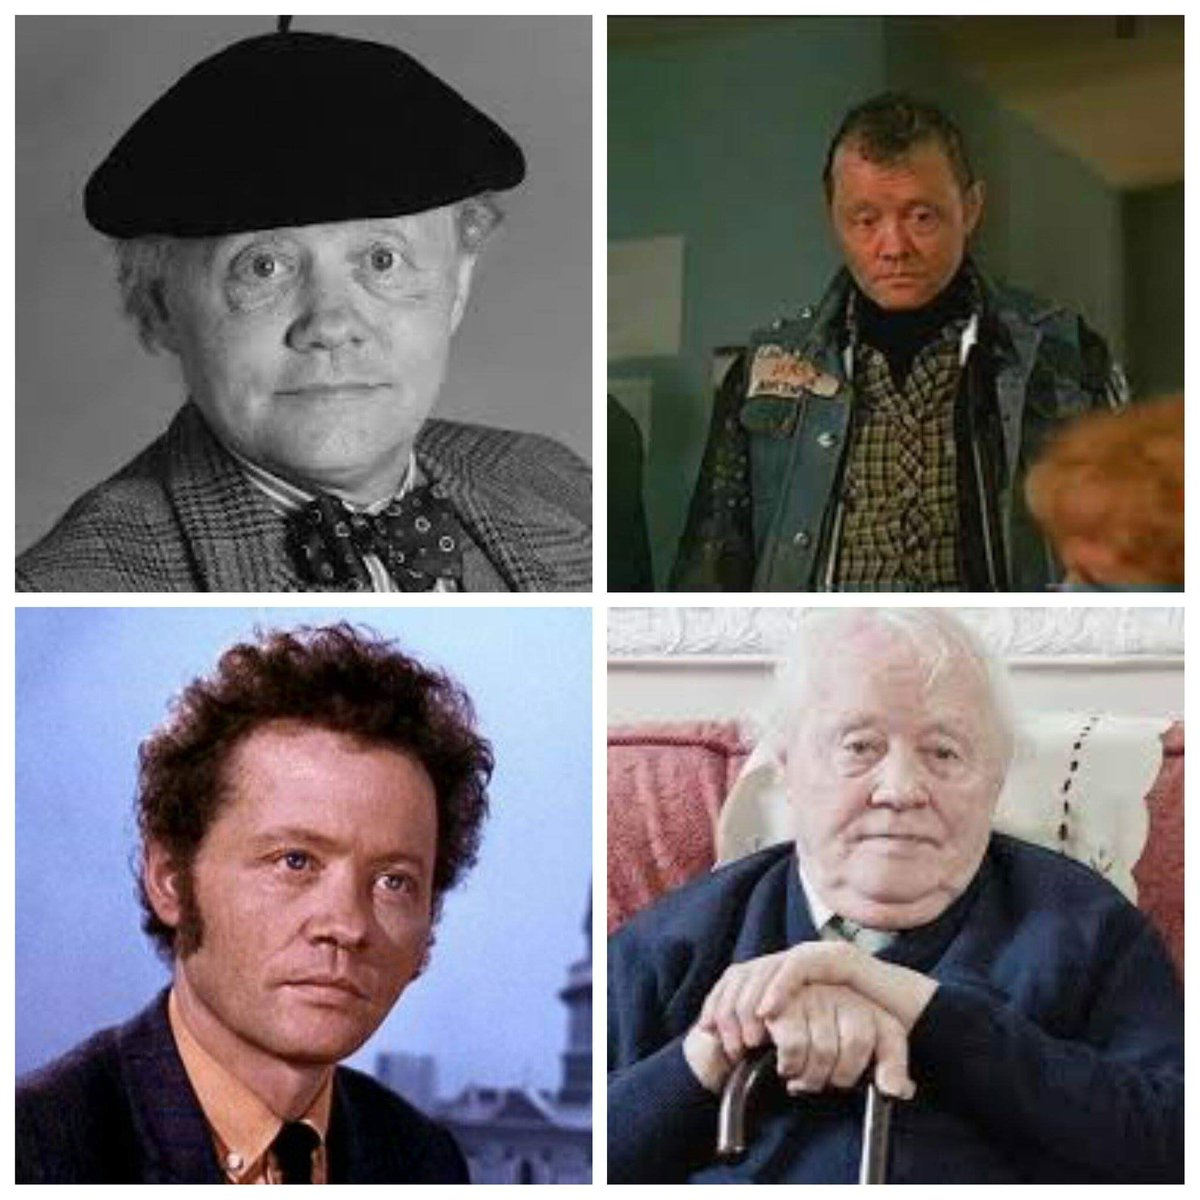 Remembering Actor Dudley Sutton who passed away a year ago today  <br>http://pic.twitter.com/ZNHxIDDbrL